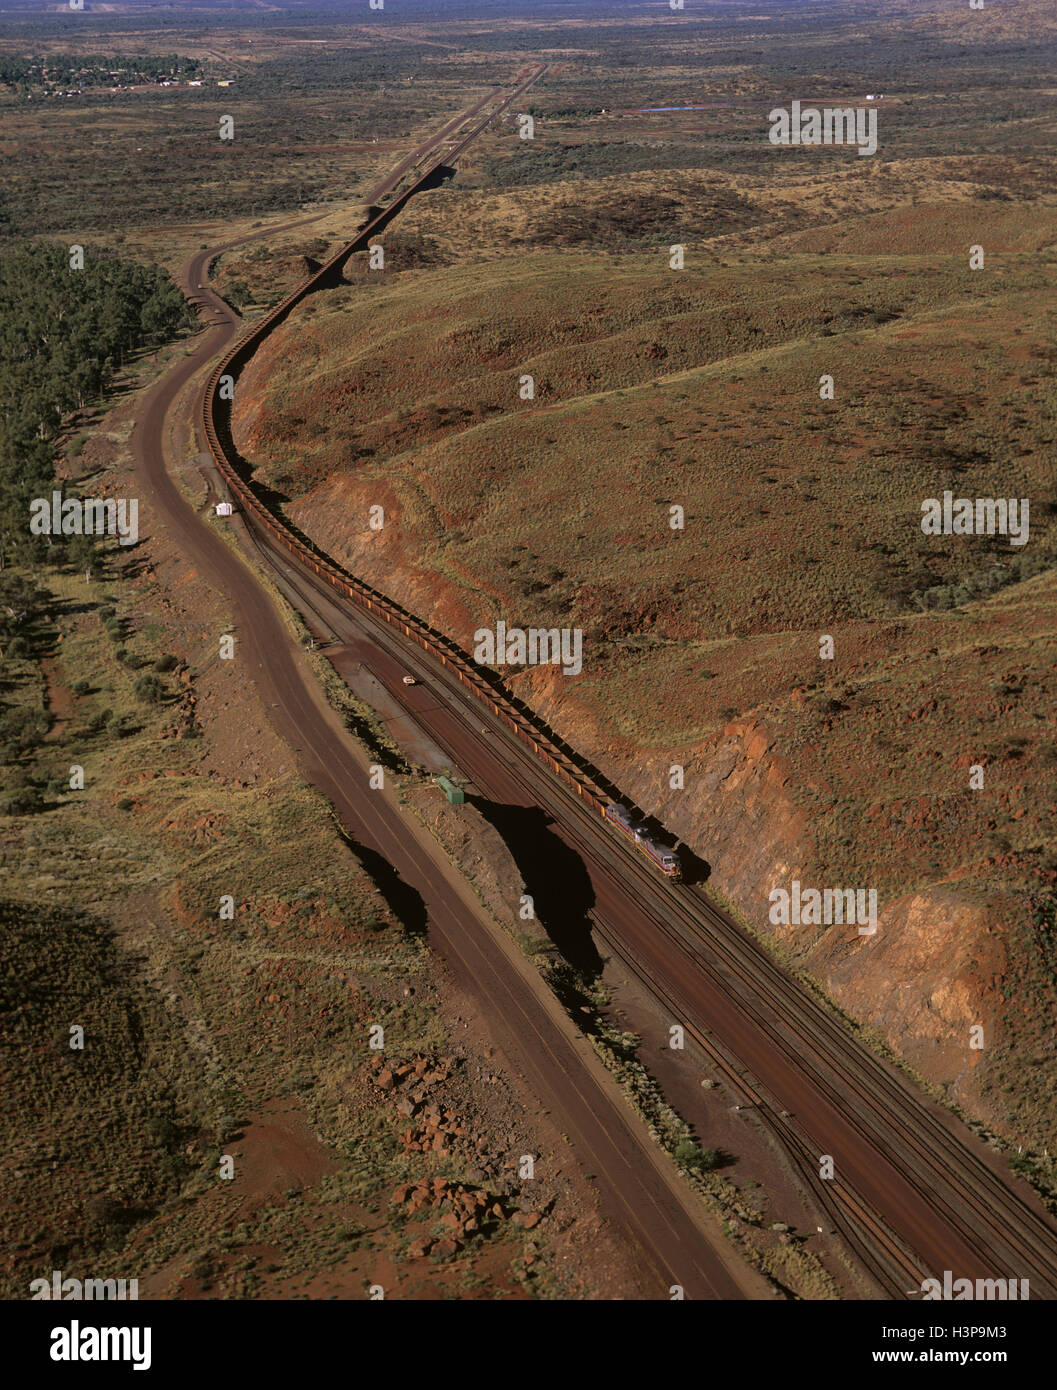 Iron ore train - Stock Image